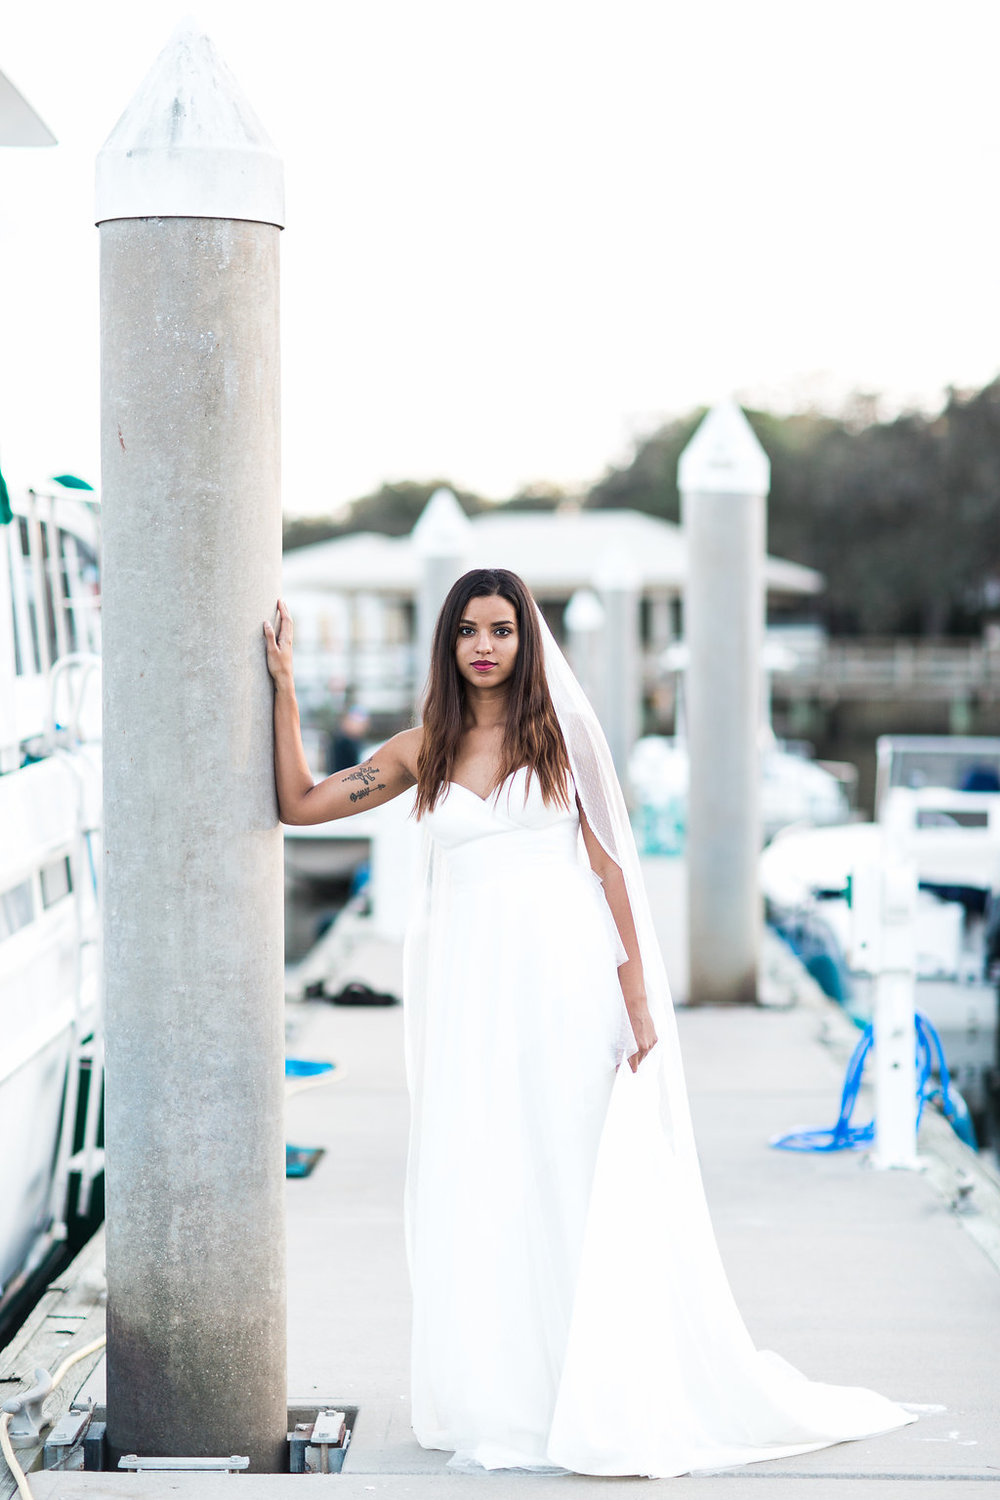 apt-b-photography-ti-adora-7655-point-desprit-wedding-dress-swiss-dot-wedding-dress-marina-wedding-coastal-wedding-ivory-and-beau-bridal-boutique-savannah-wedding-dresses-savannah-bridal-gowns-adele-amelia-savanah-florist-5.jpg